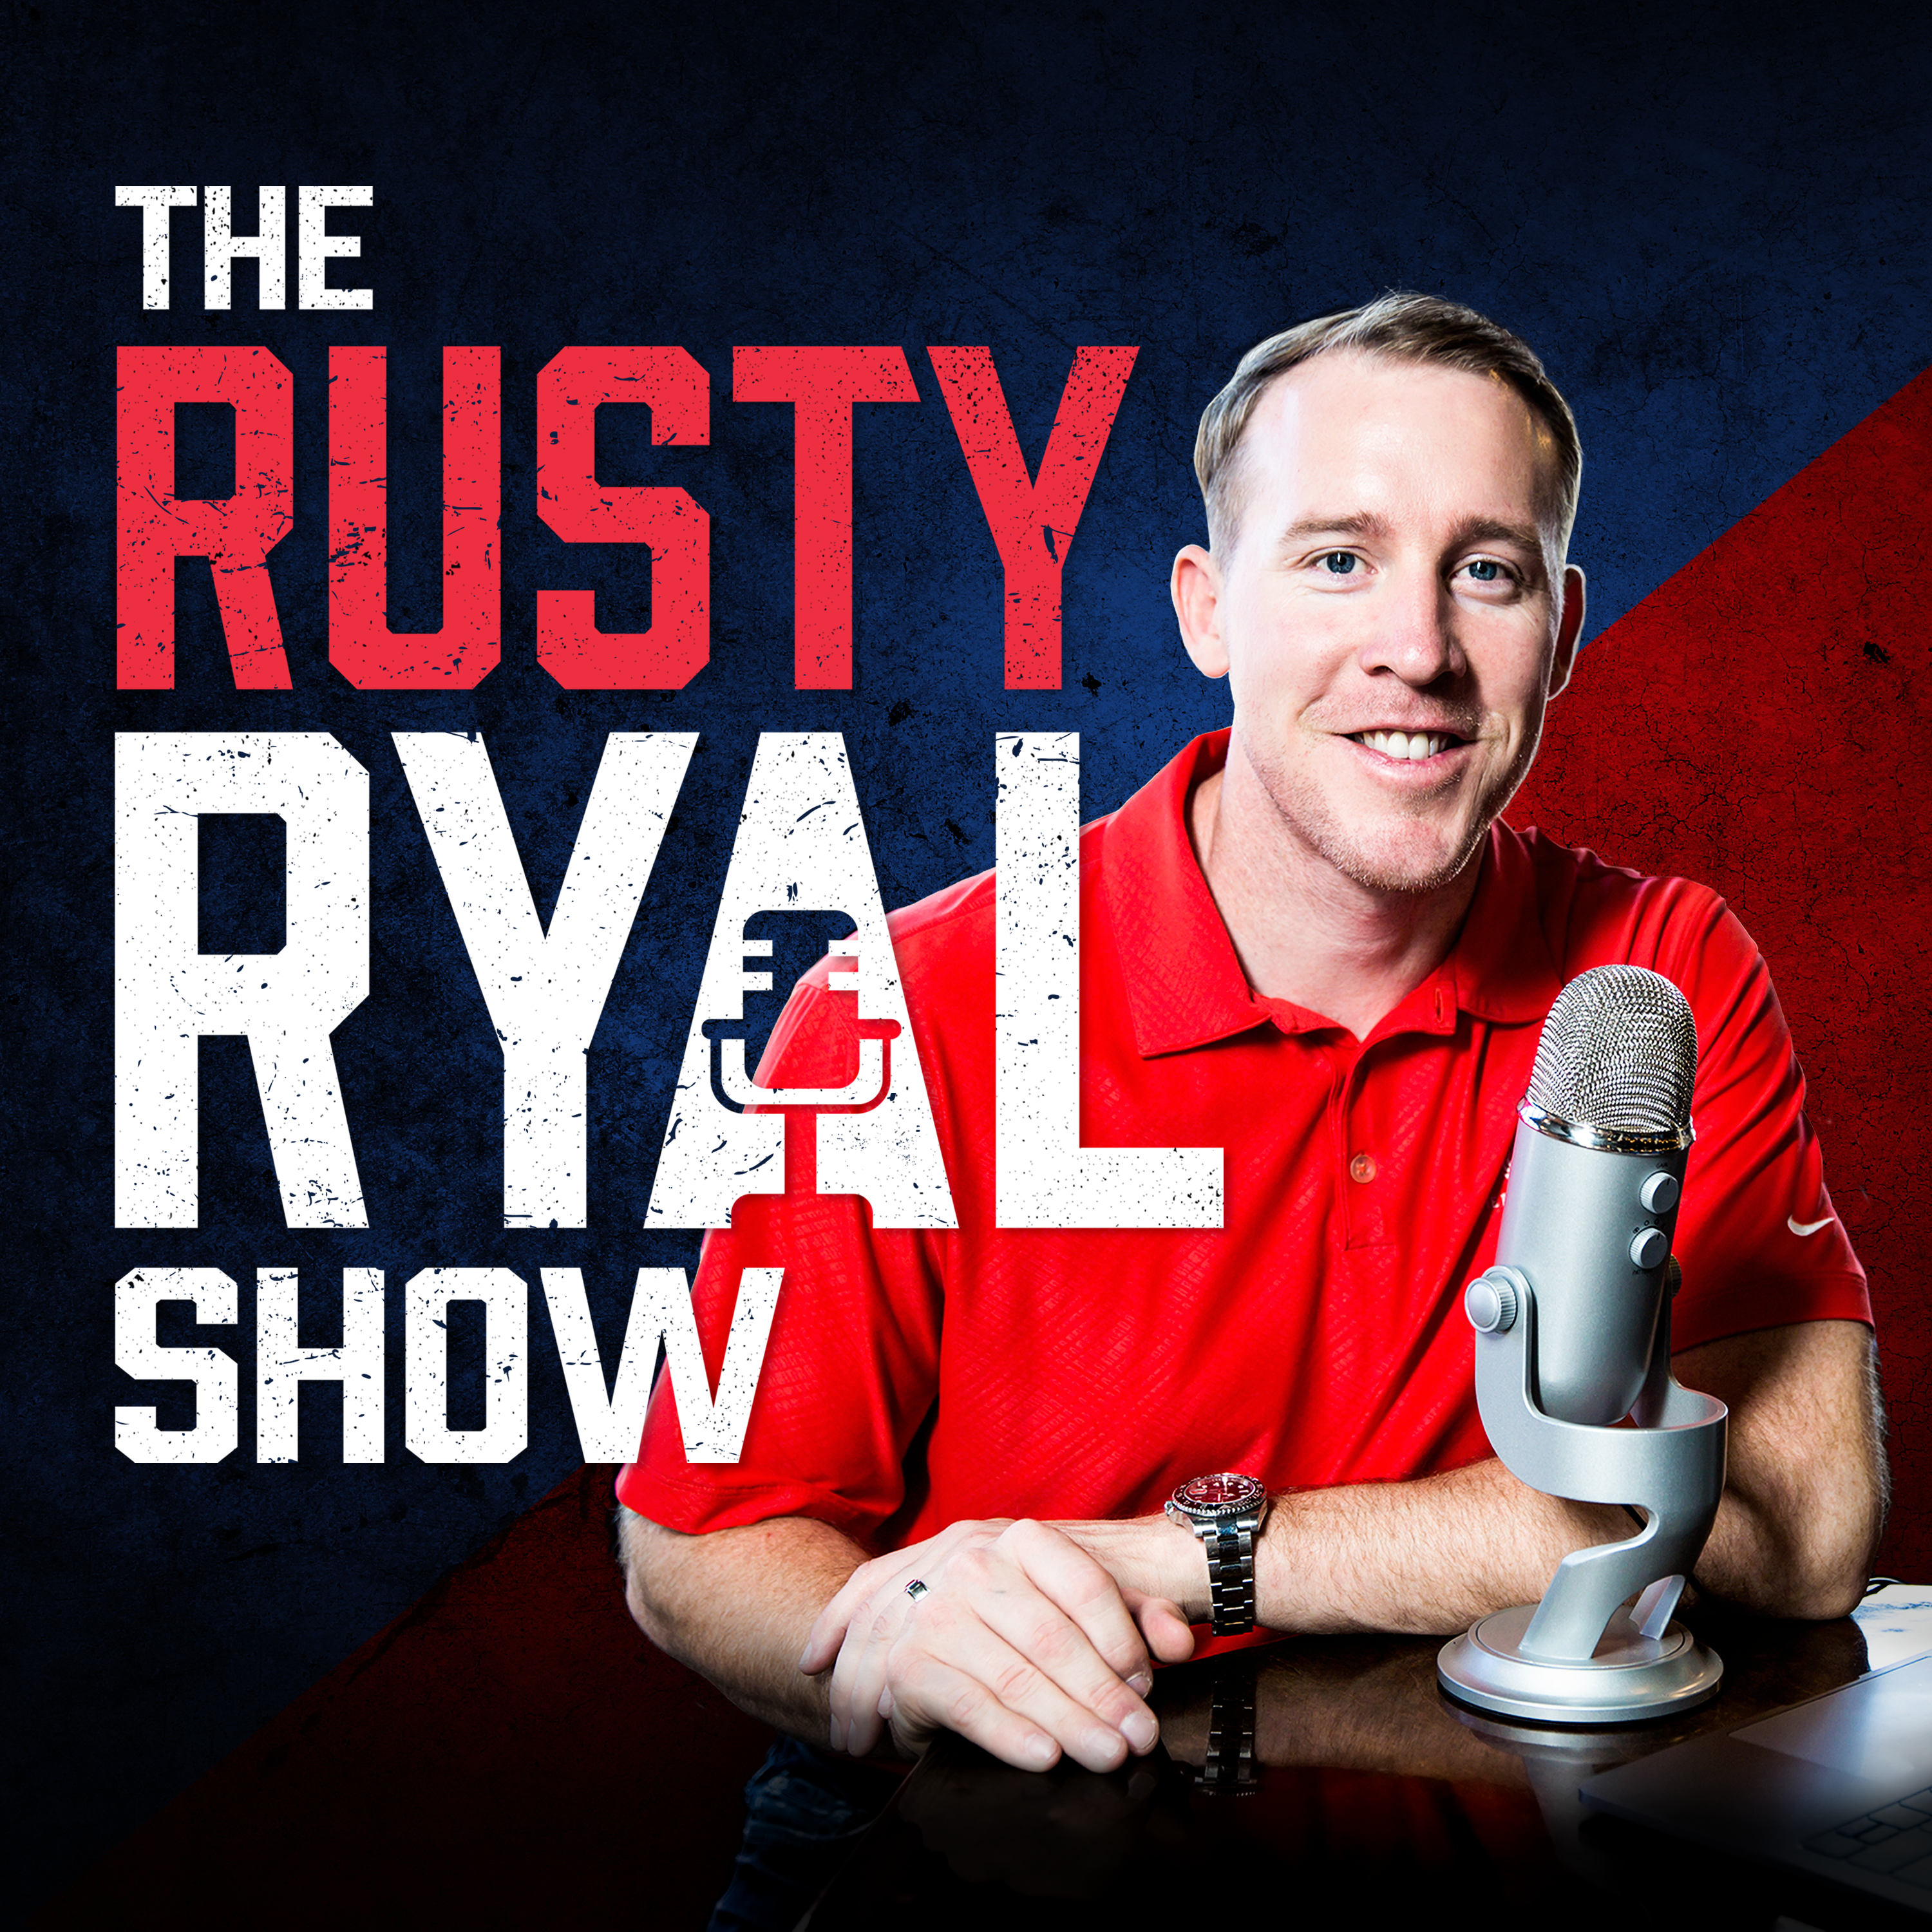 The Rusty Ryal Show show art